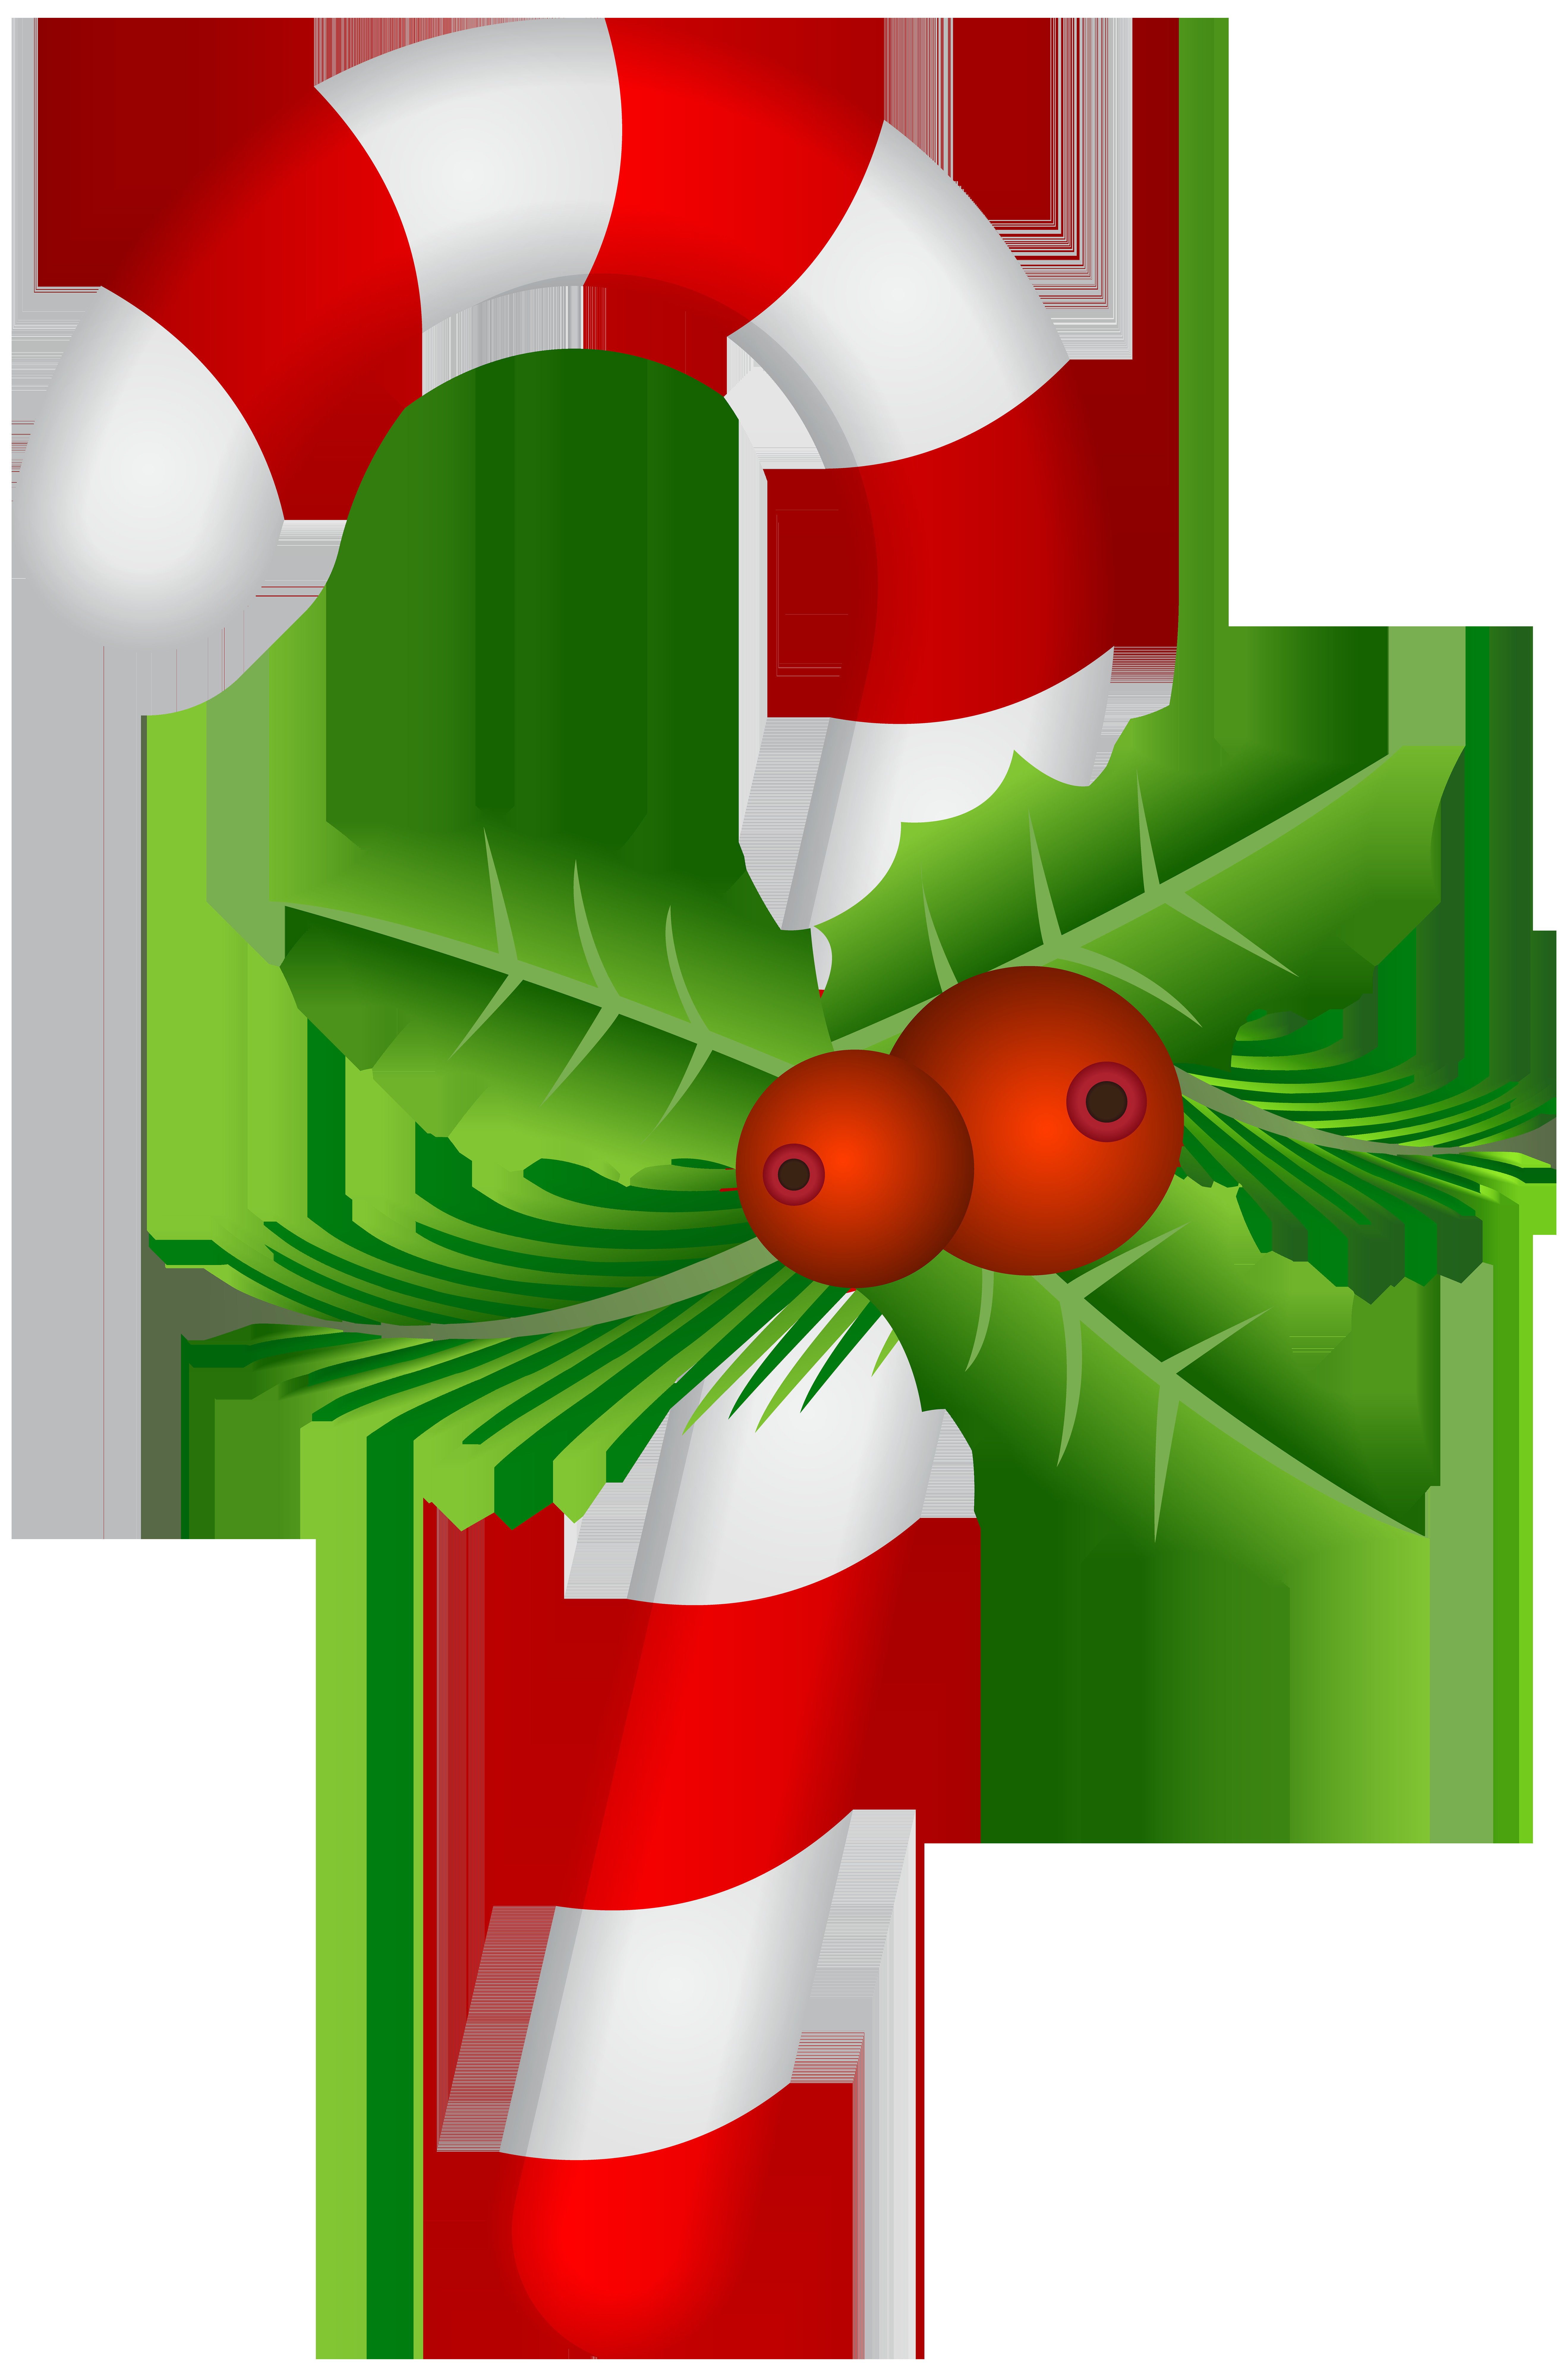 Christmas Candy Cane  Pin by Courtney Patterson on DESSETS CLIP ART